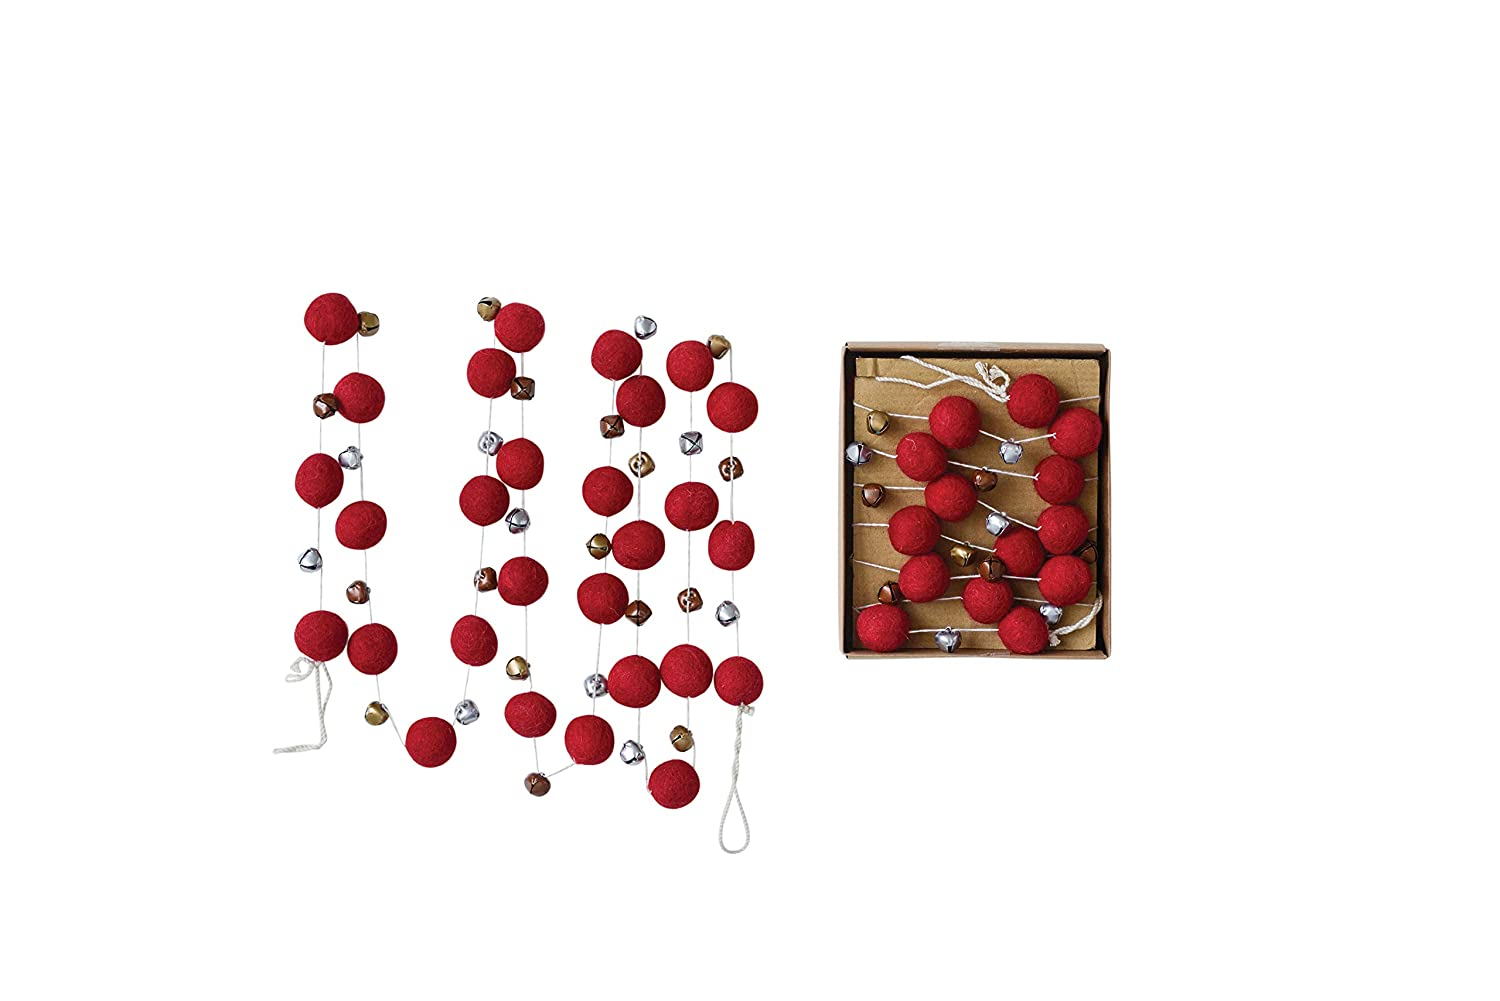 Red XM1864 Creative Co-Op 72 Inch Wool Felt Garland with Pom Poms